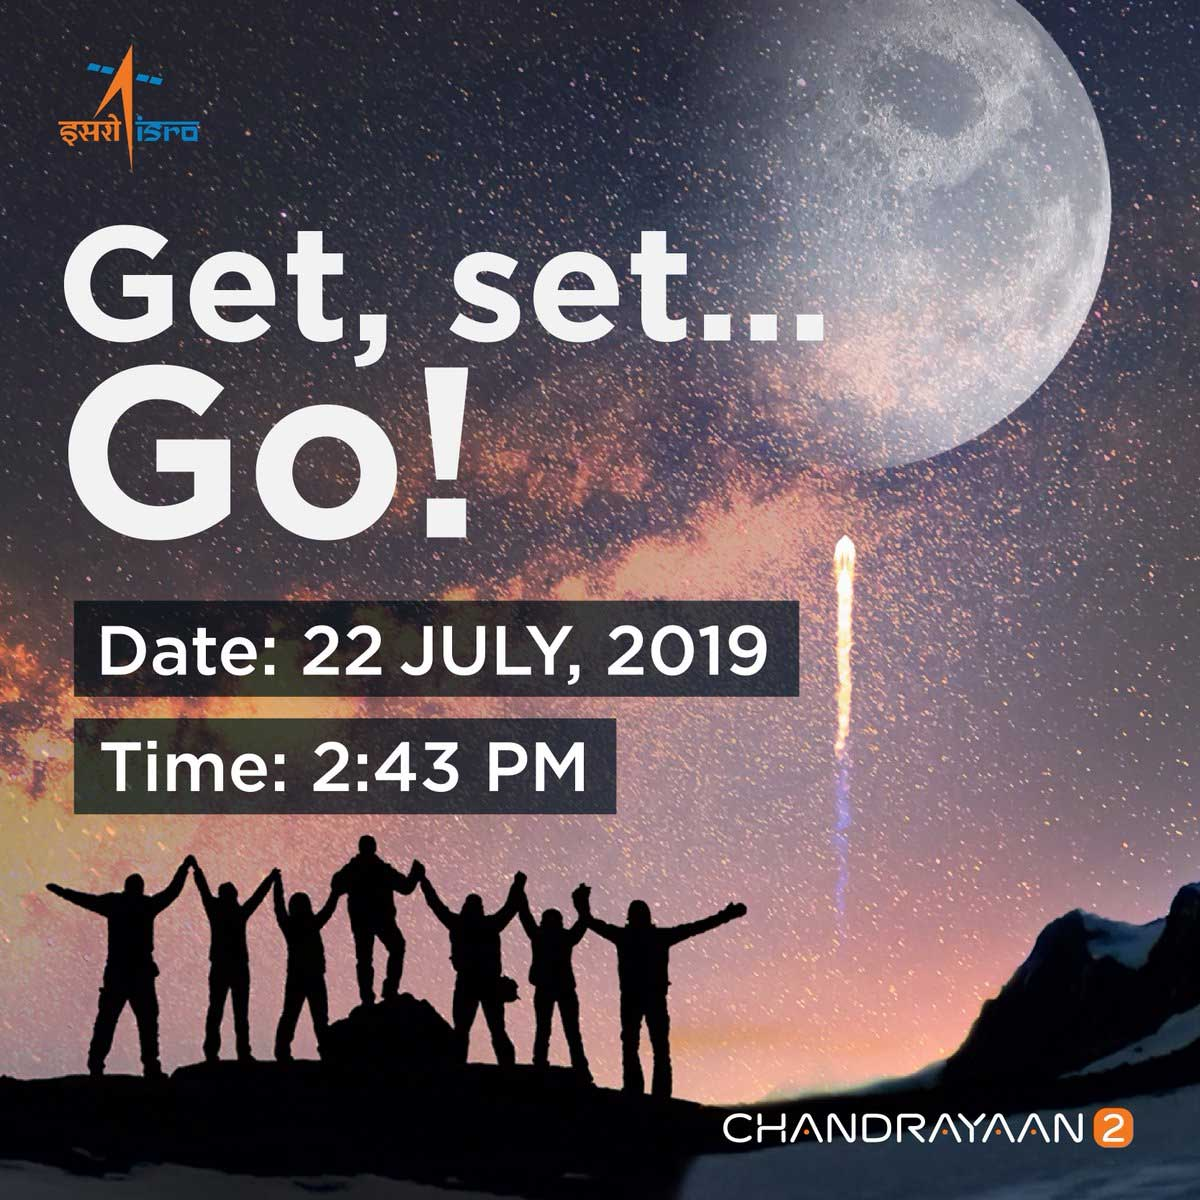 Chandrayaan 2 New Launch Date Fixed on Jully 22nd 2019